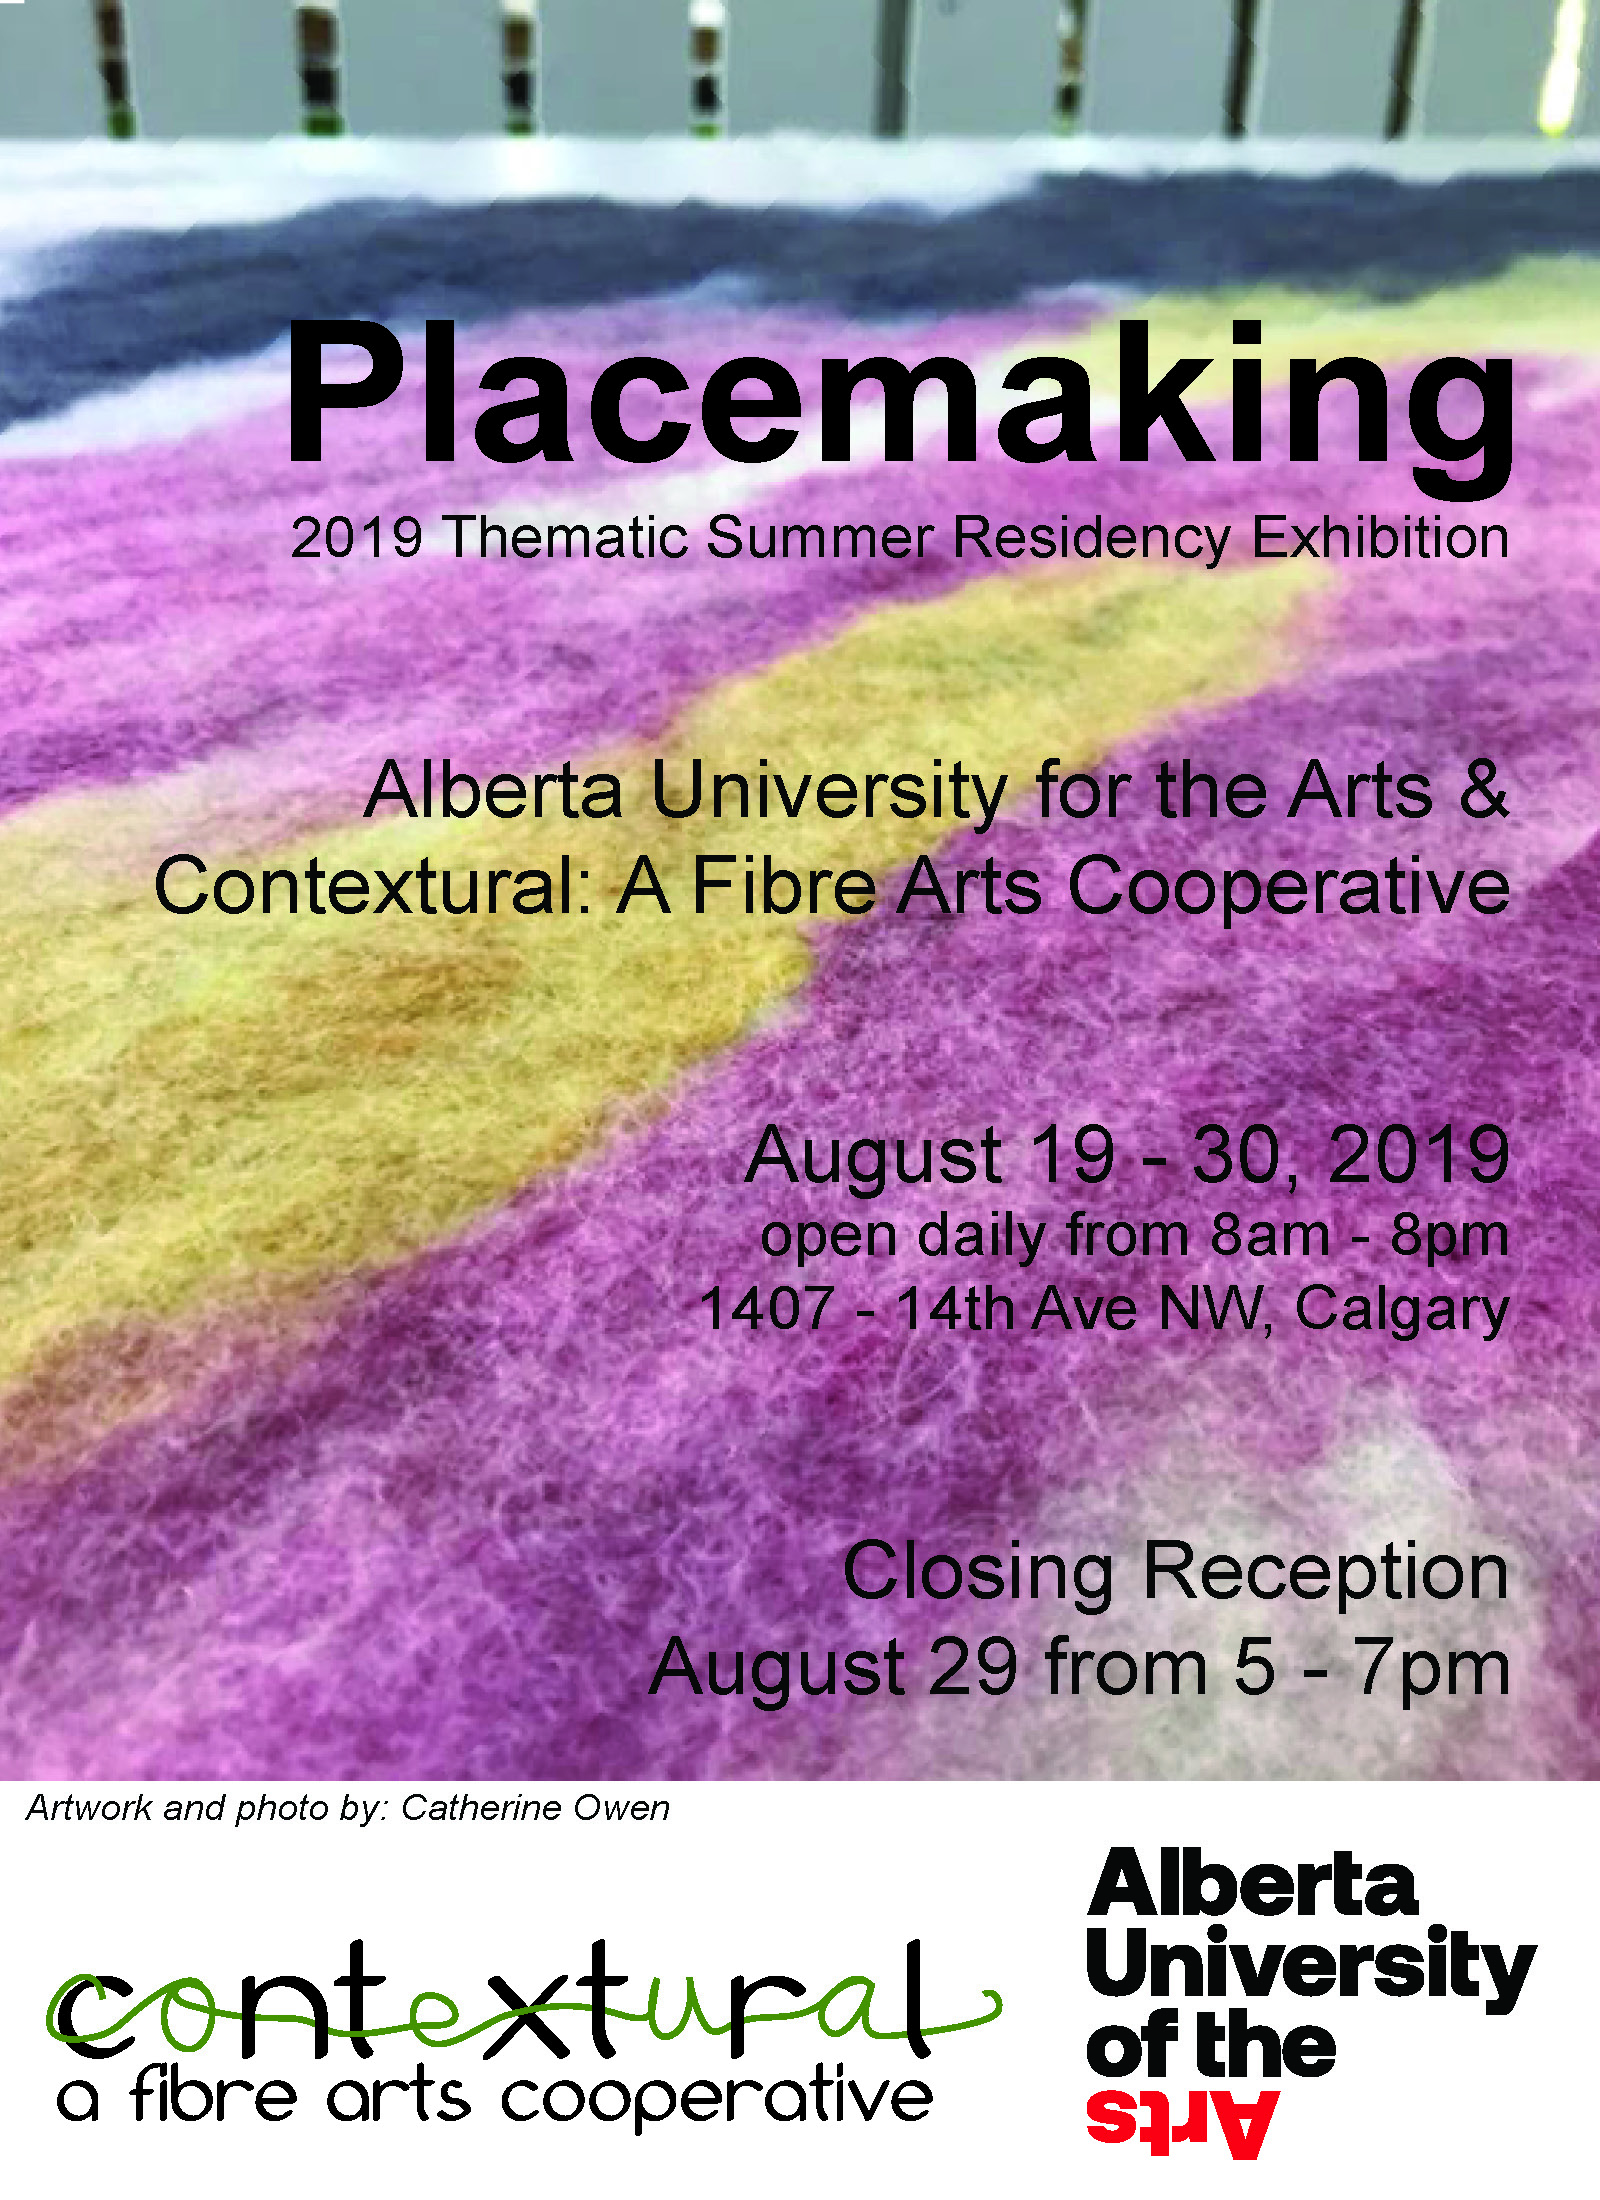 Placemaking: 2019 Residency Exhibition - August 19 - 30, 2019open daily from 8am - 8pmAlberta University of the Arts &Contextural: A Fibre Arts Cooperative1407 - 14th Avenue NW, CalgaryClosing Reception, August 29, 5 - 7pmHow do we understand a place? What are the social, cultural, political, historical, traditional, conceptual and personal dimensions that define place? How do these questions help artists to understand and explore the context in which they locate their research and work? The Placemaking Residency allows participants to consider these questions and more in a community studio environment, supported by an exciting mix of visiting artists and scholars. Make a place for your practice, for your voice.